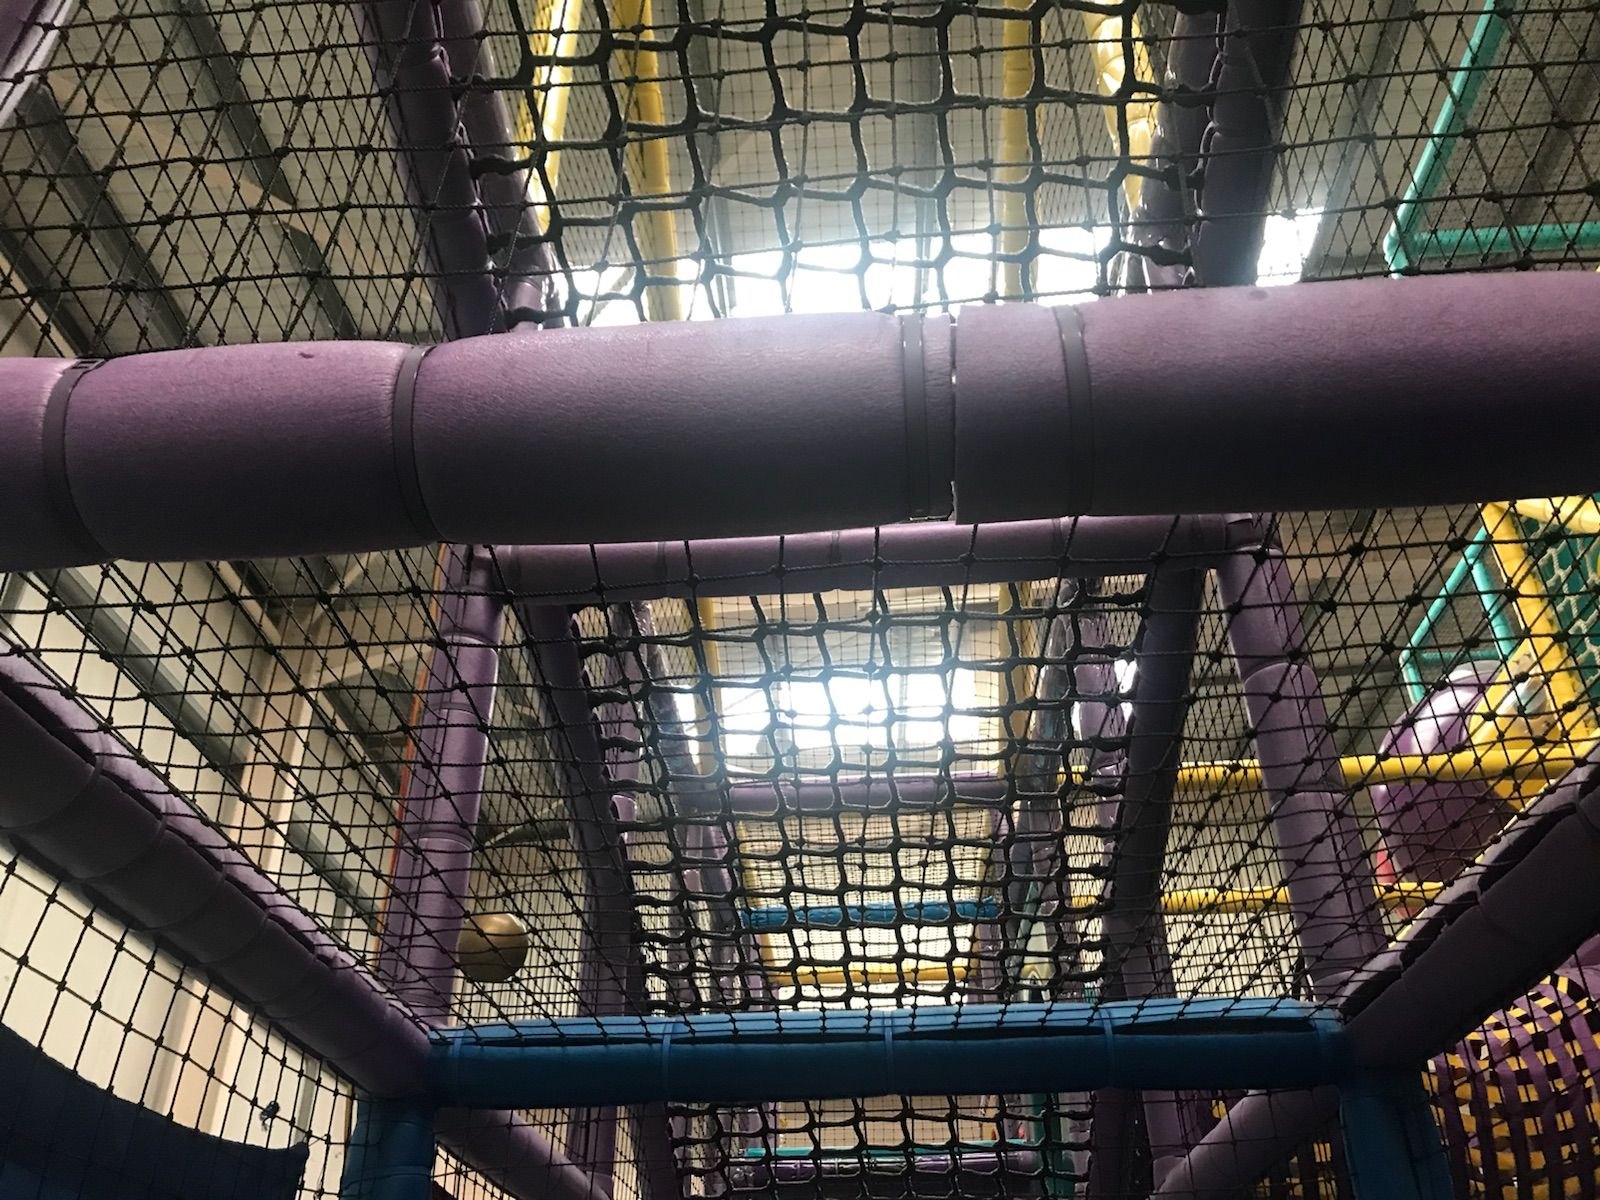 Playground Netting - Available at Diamond Networks